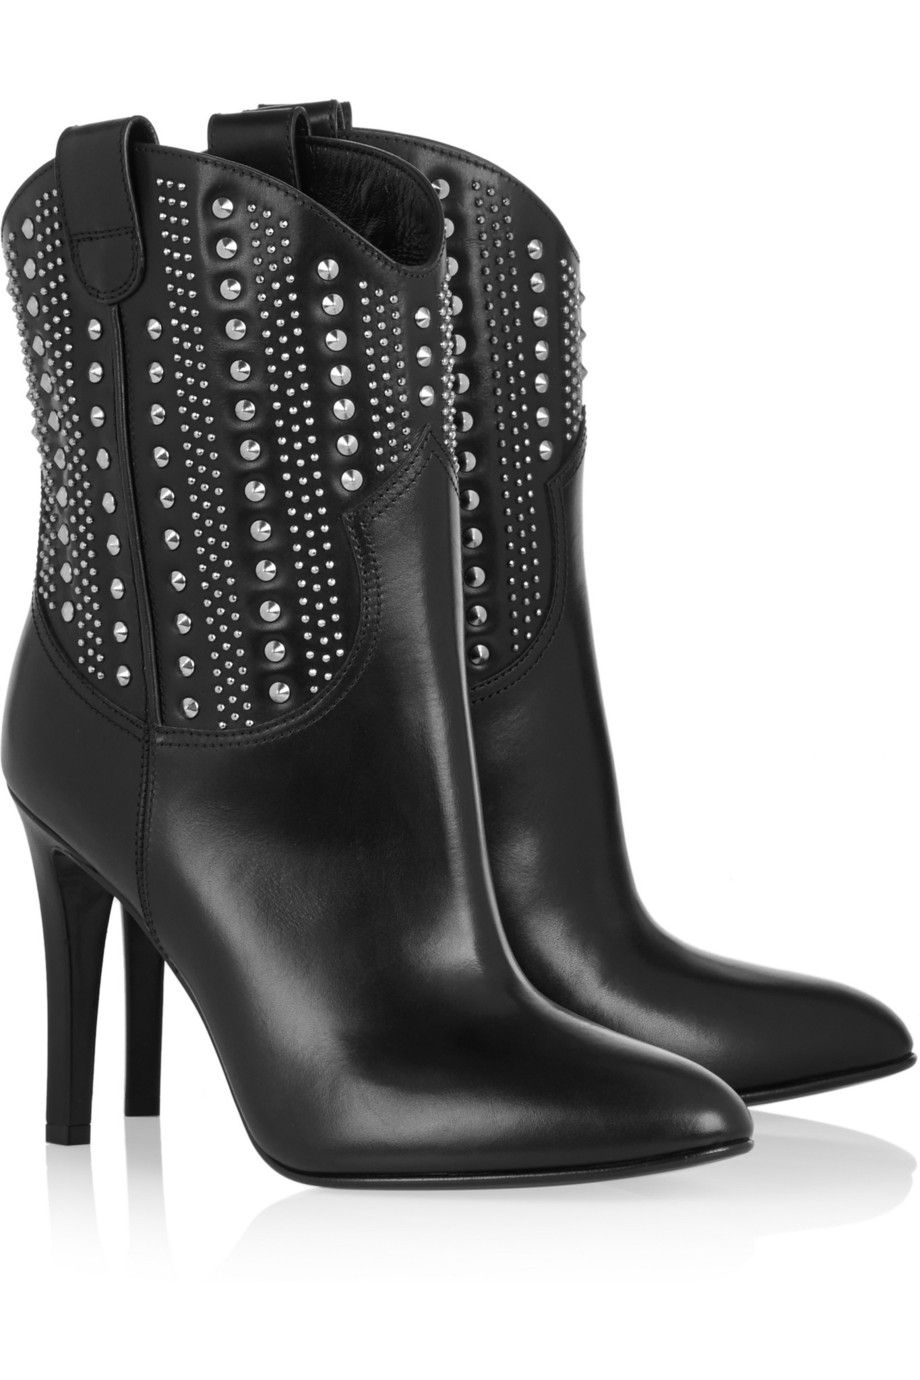 Saint Laurent Leather Studded Ankle Boots fast delivery online fake cheap online ocmlHvB